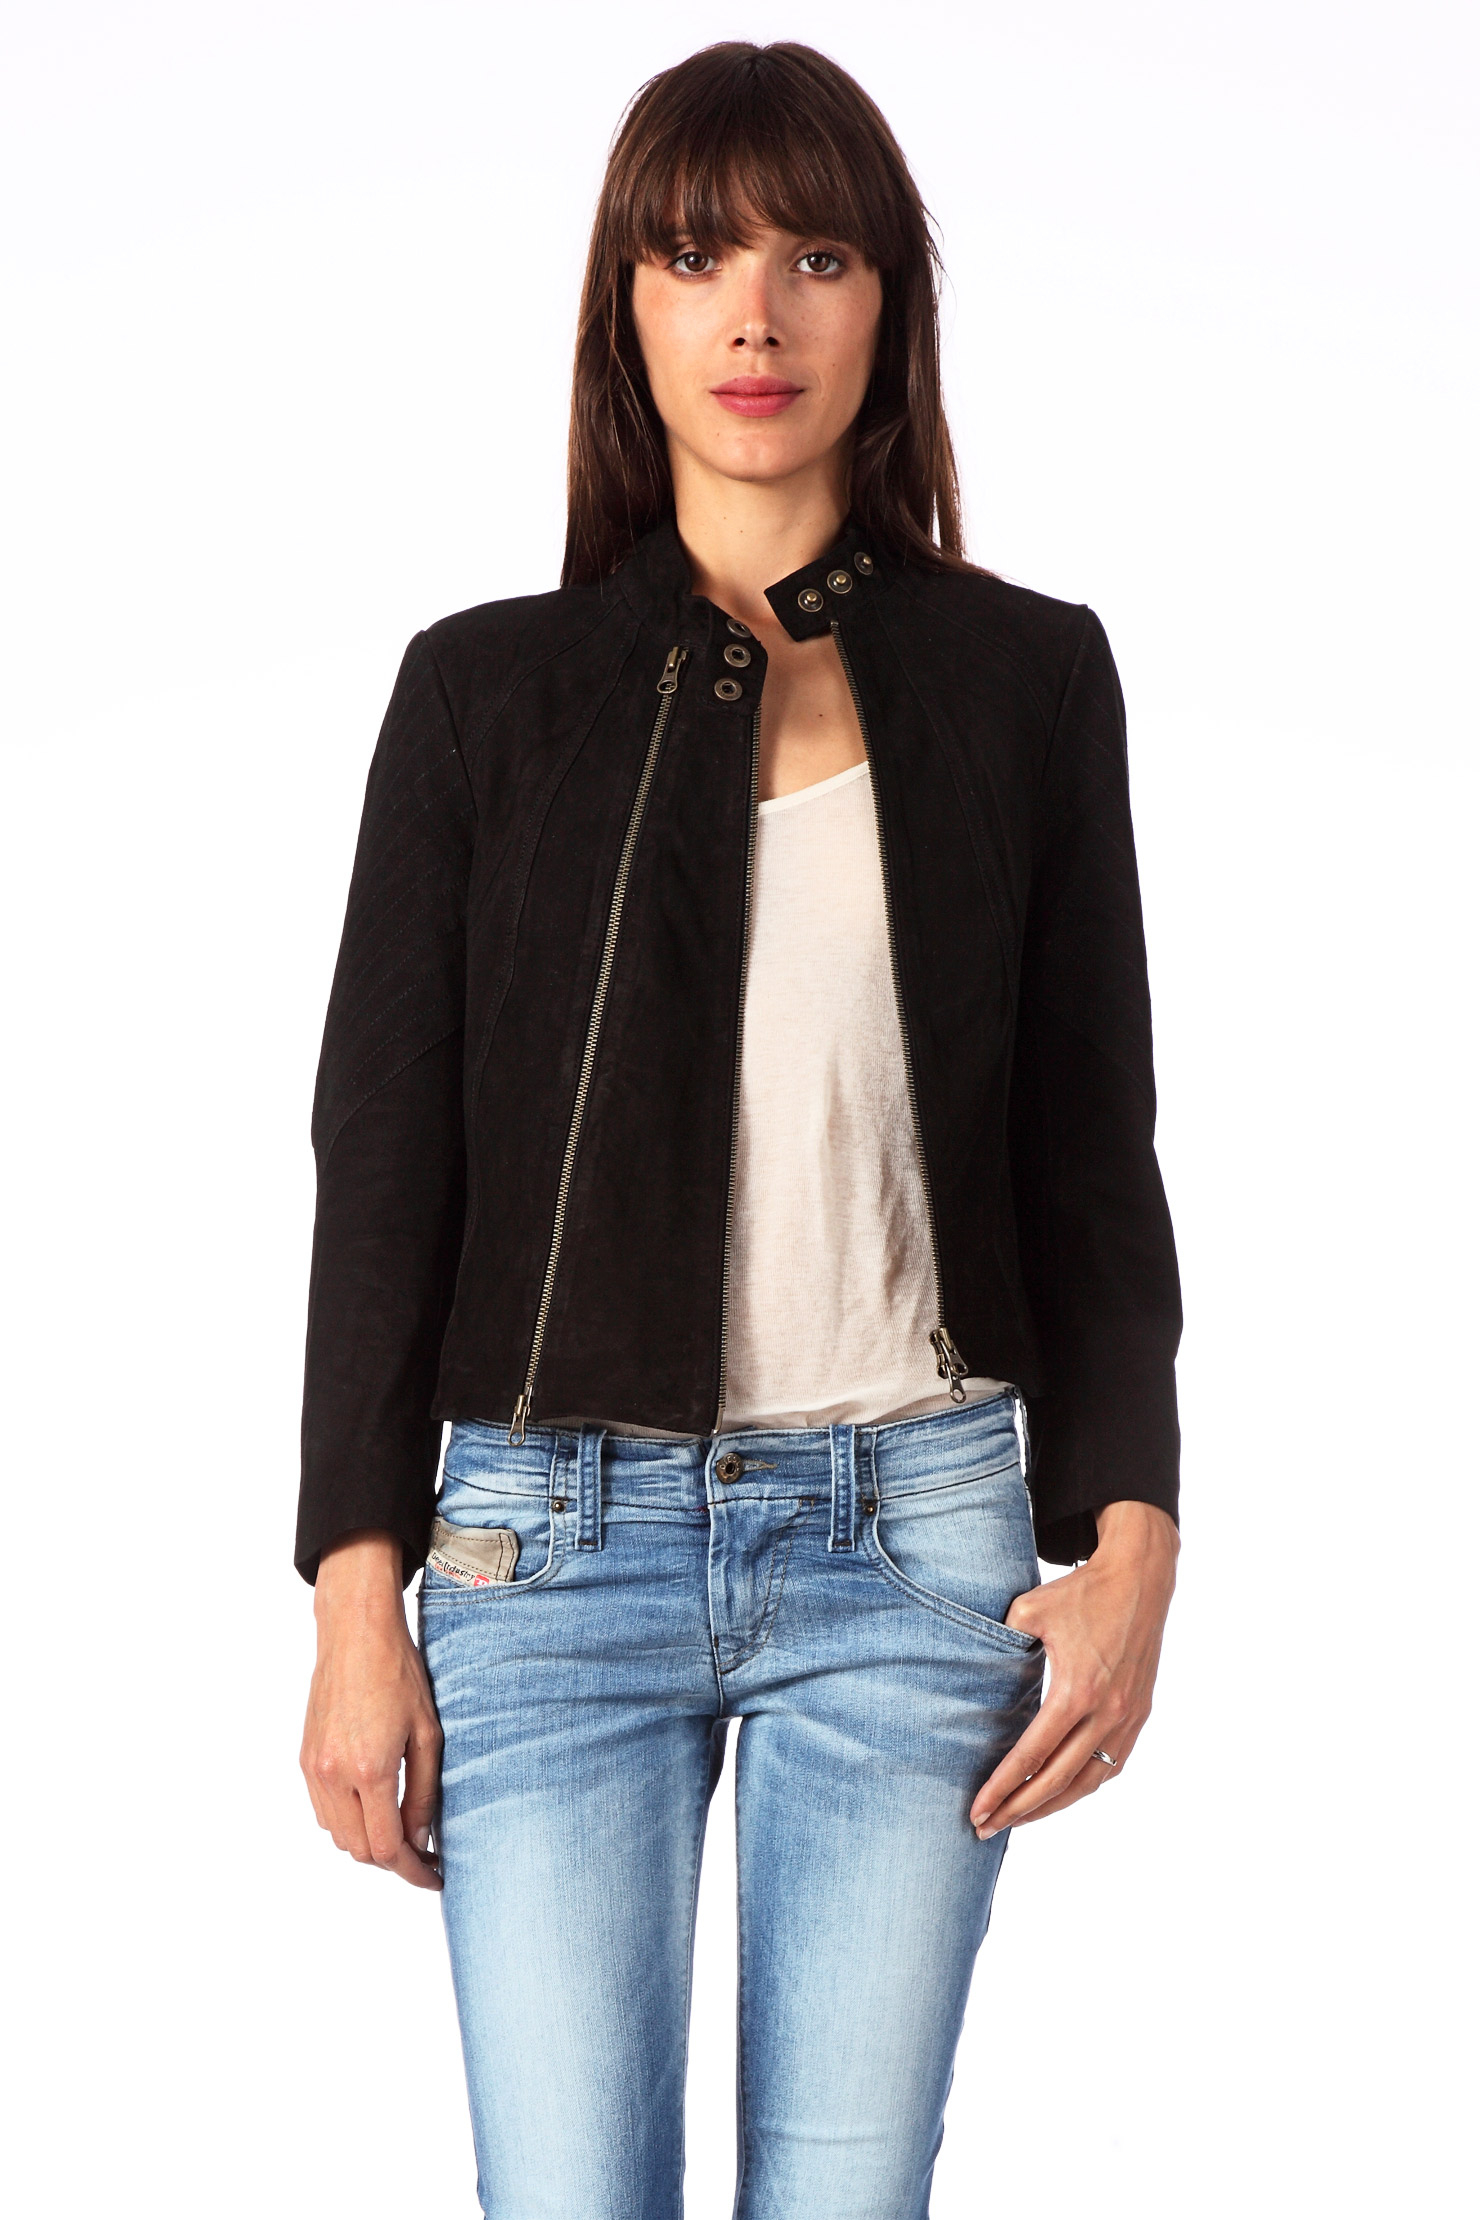 vero moda very leather coleen leather jacket hs11 in black lyst. Black Bedroom Furniture Sets. Home Design Ideas